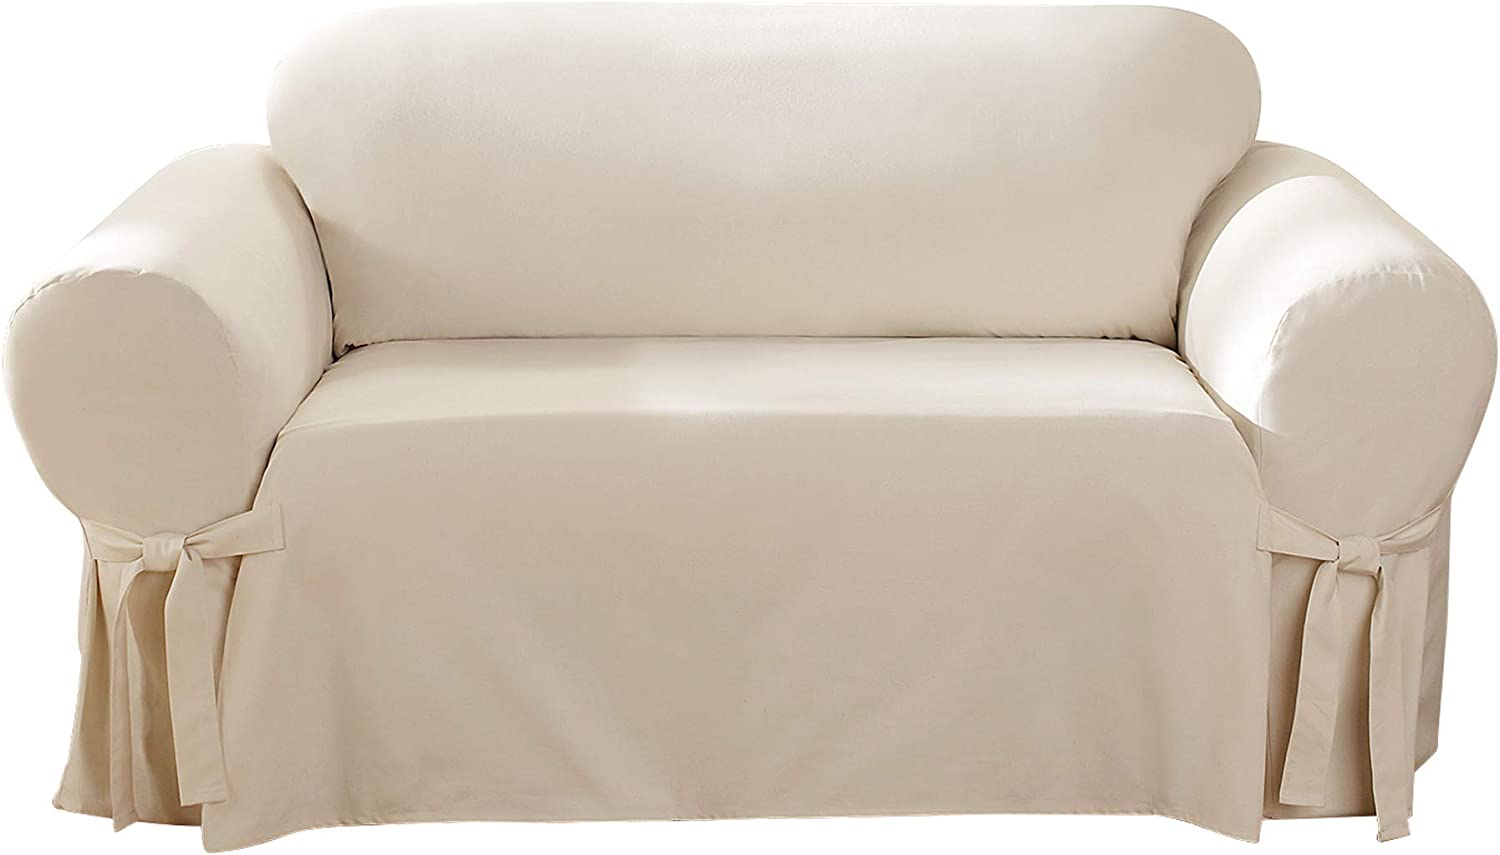 Surefit Home Décor Sure Fit Cotton Duck-Loveseat Slipcover-Natural, 34 x 50 x 40 Inches